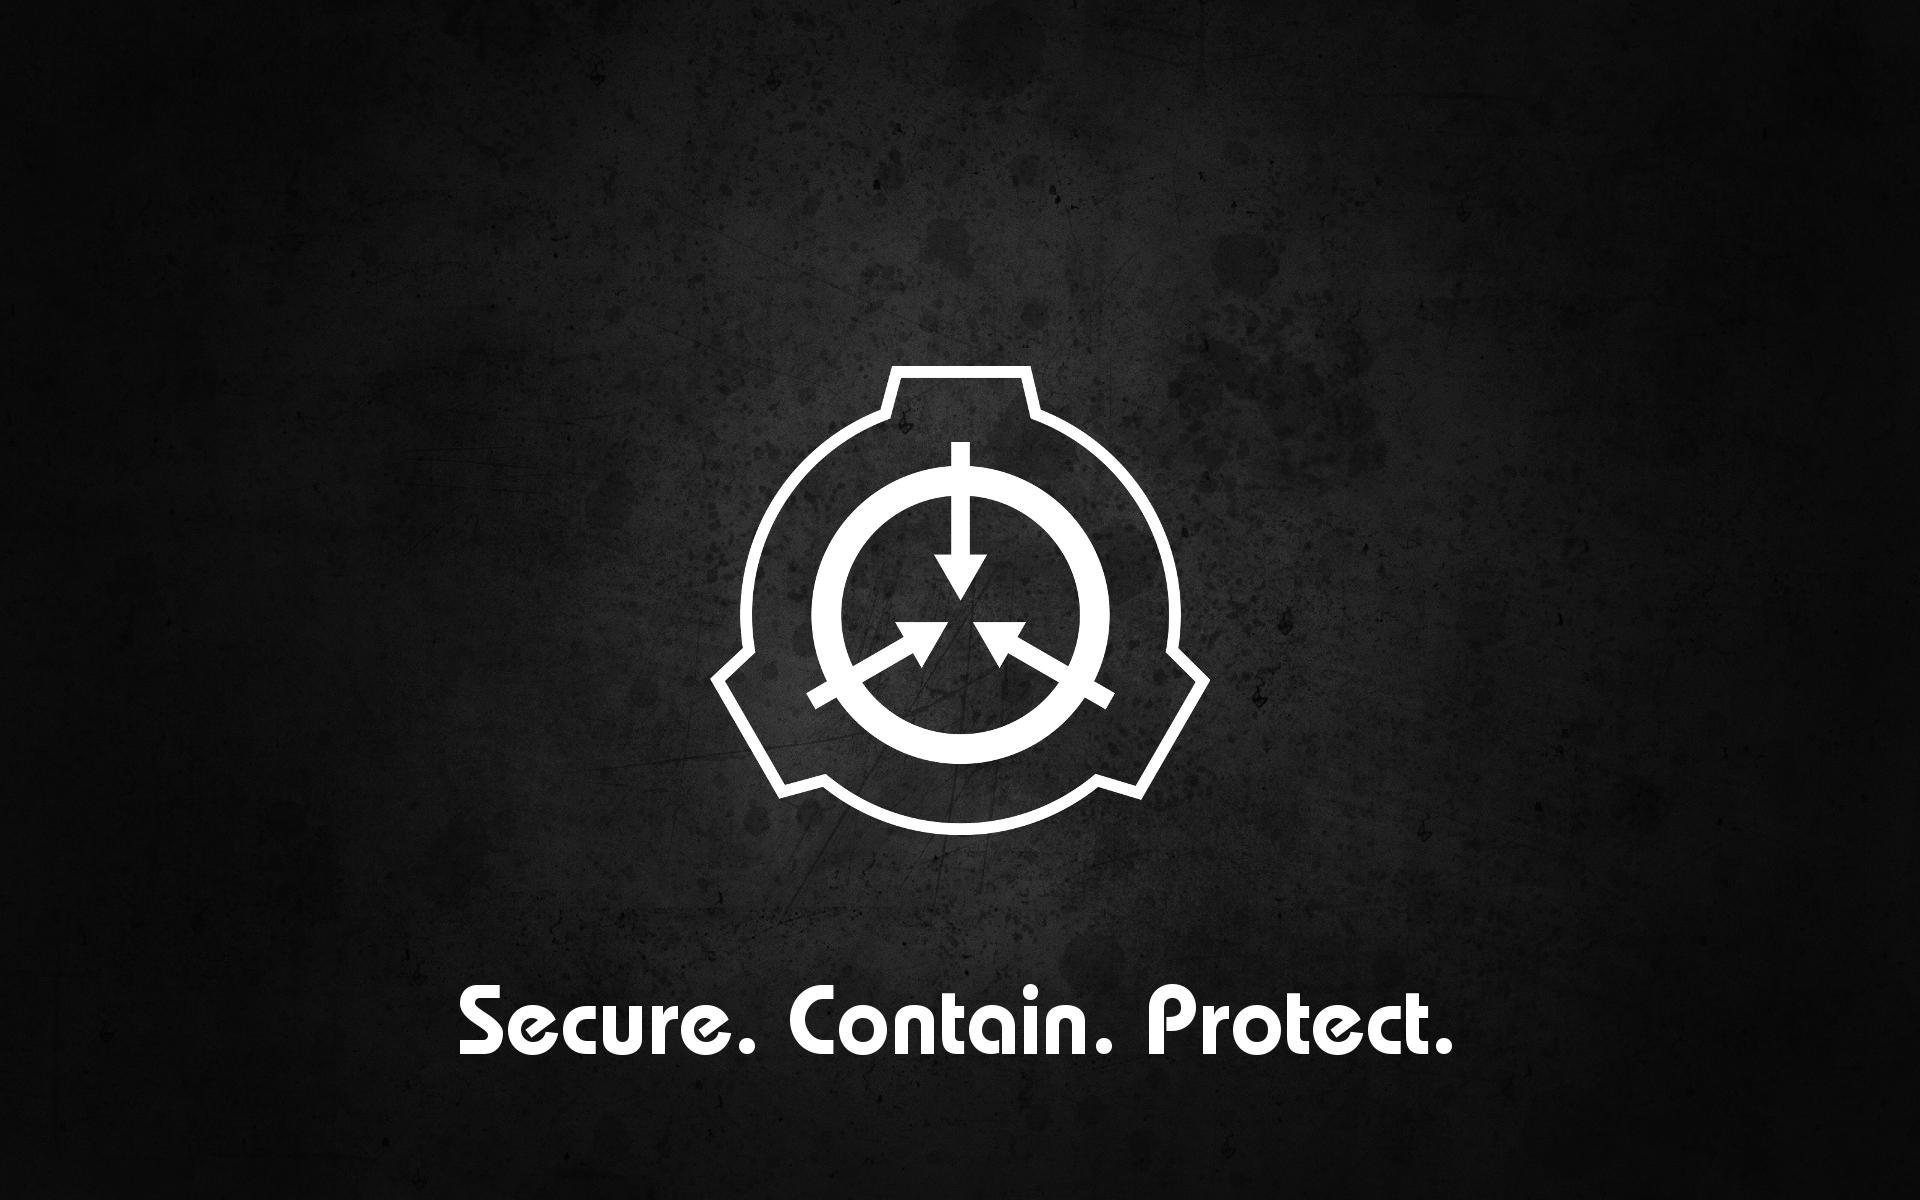 Scp Foundation Logo Wallpapers On Wallpaperdog